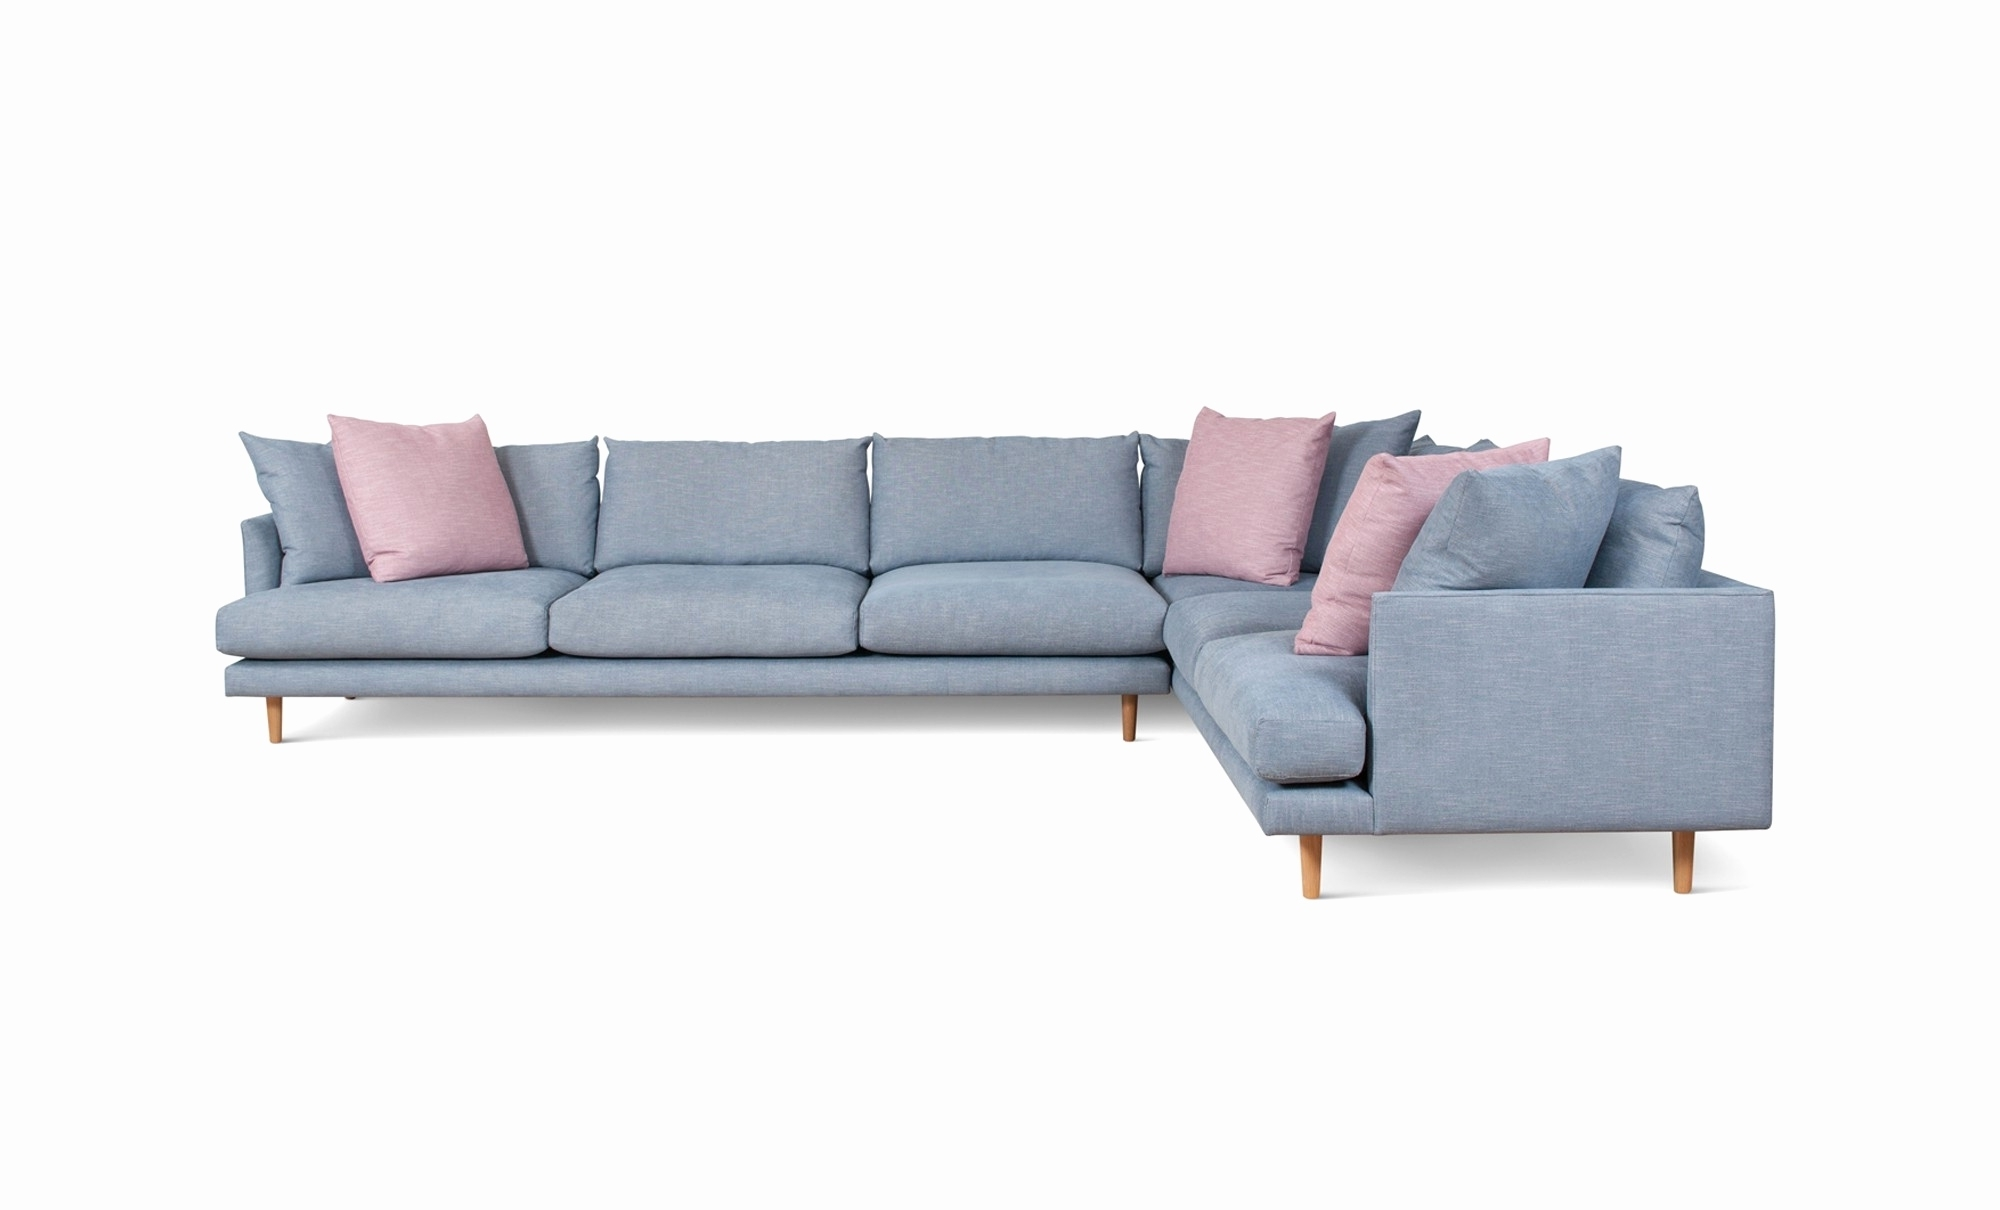 Big Lots Chaise Lounges With Regard To Most Current 30 Unique Big Lots Chaise Lounge Graphics (30 Photos) (View 6 of 15)